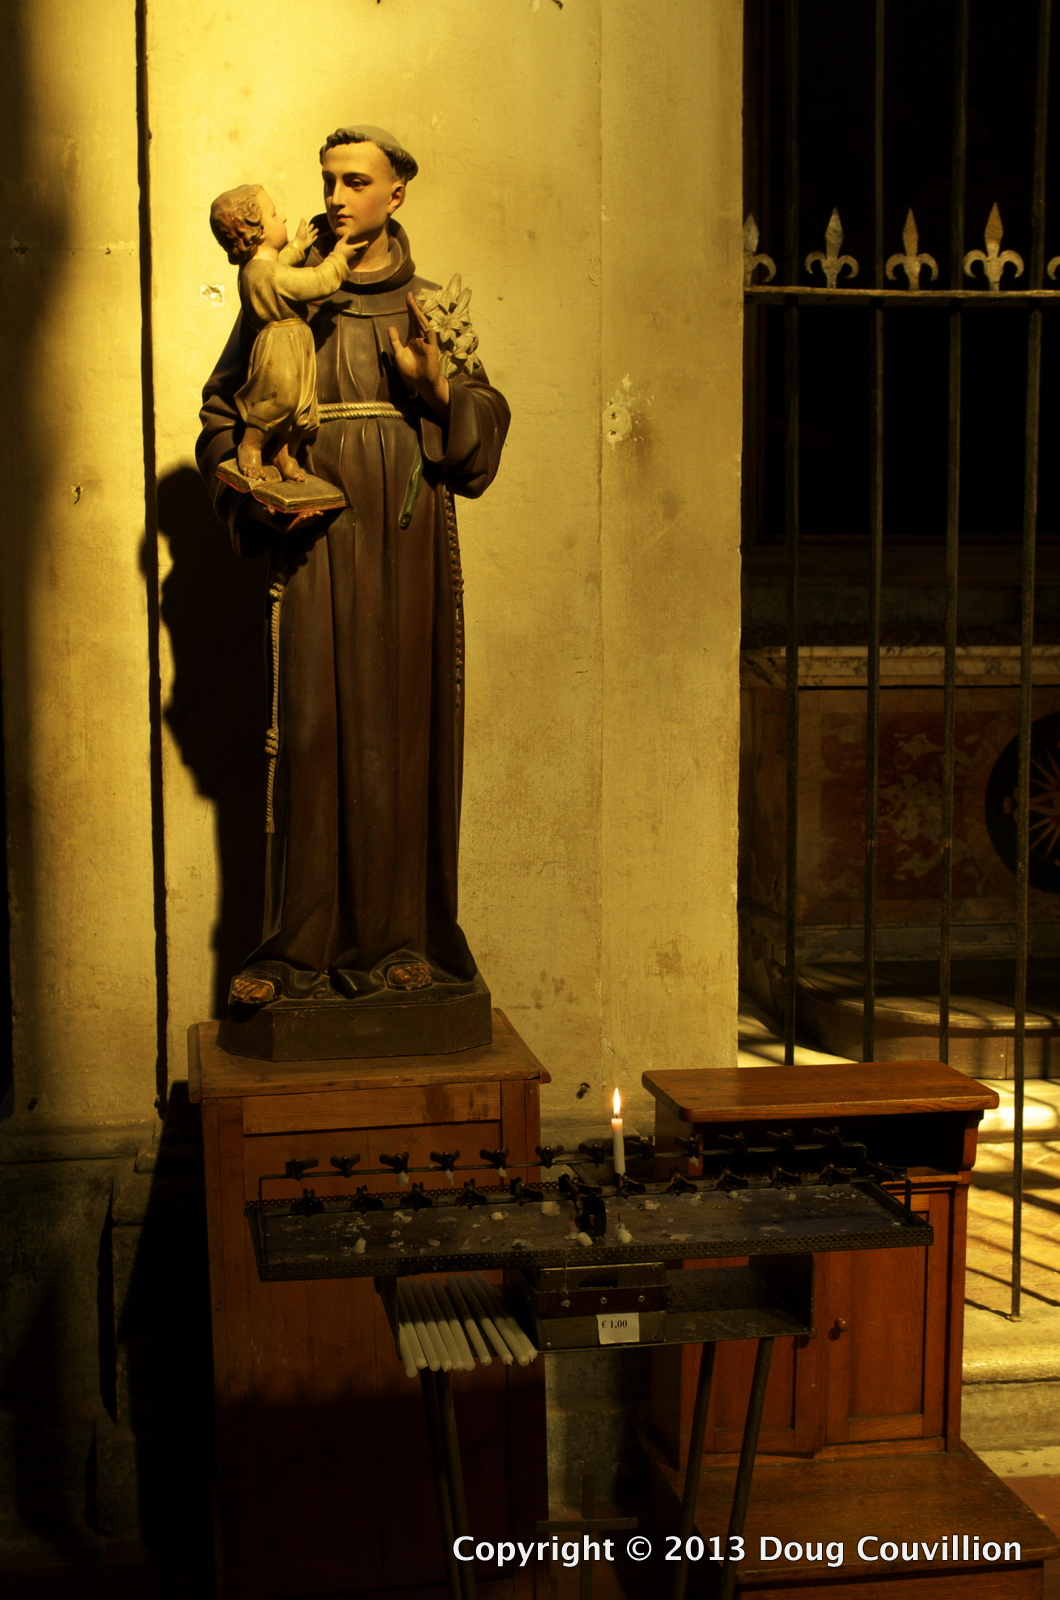 photograph of a shrine inside Santa Maria della Consolazione in Rome, Italy